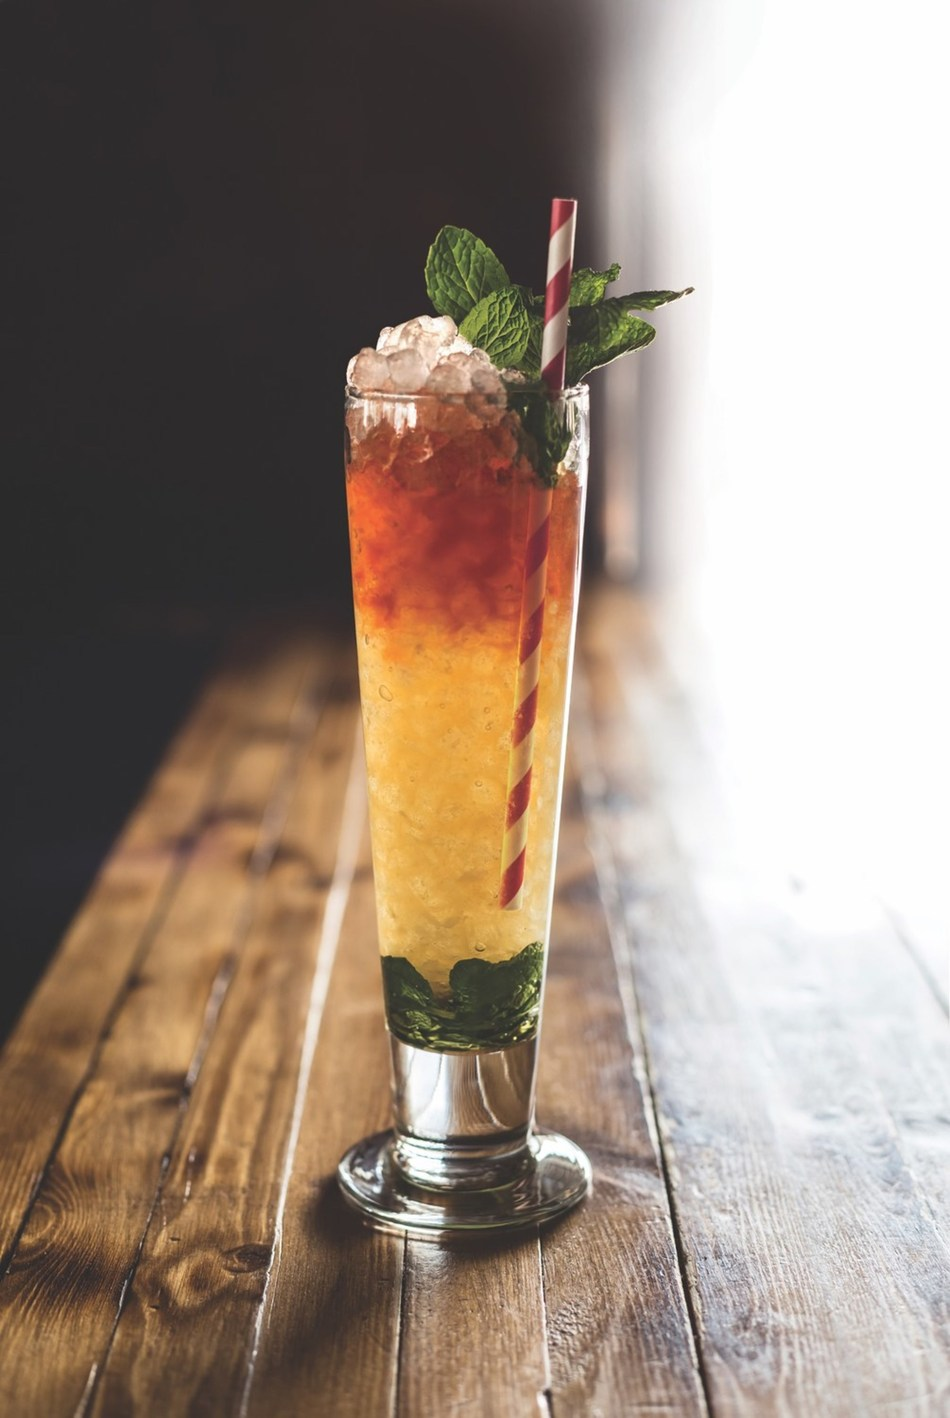 ANGOSTURA® aromatic bitters and ANGOSTURA® orange bitters are a staple in swizzled drinks, but perhaps the most iconic is the Queen's Park Swizzle. Created in Trinidad, constructed with rum and a heavy serving of ANGOSTURA aromatic bitters, it is impossible to turn down a Queen's Park Swizzle.